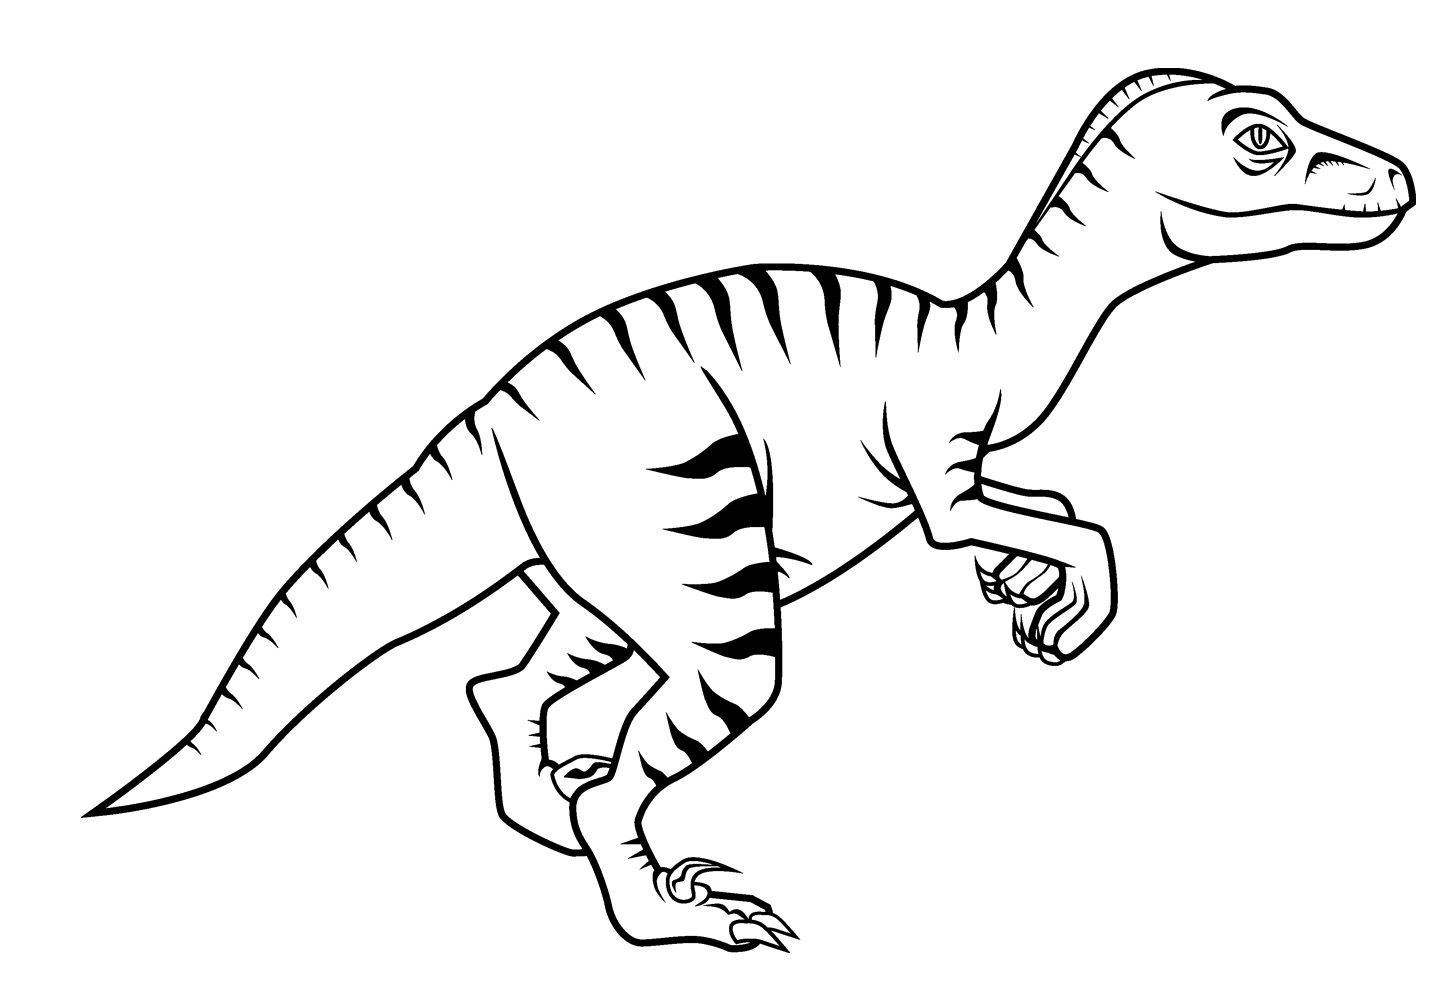 Dinosaur Velociraptor Coloring Pages Dinosaur Coloring Pages Animal Coloring Pages Dinosaur Coloring